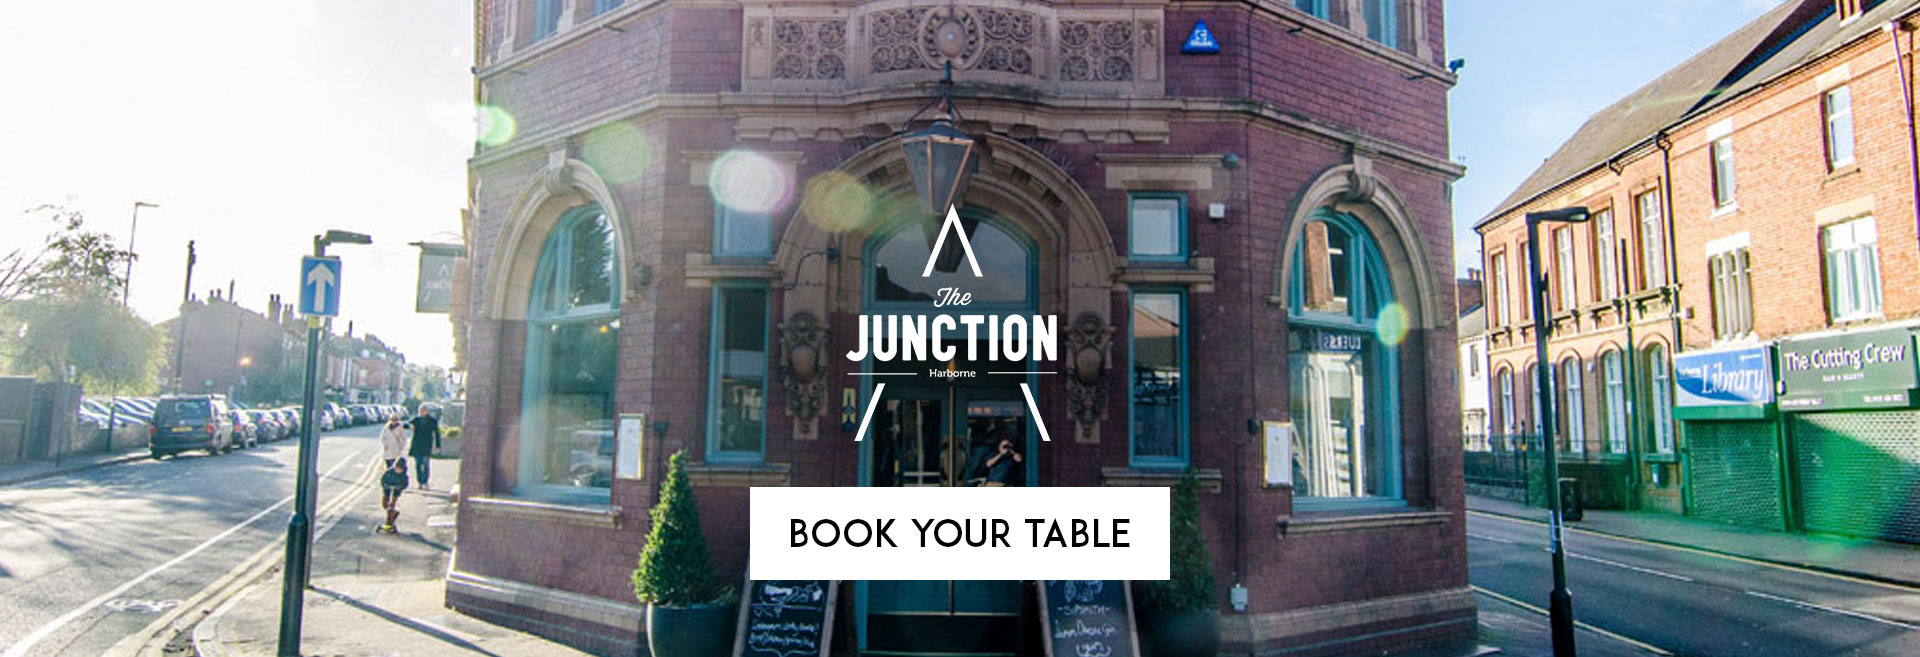 Book Your Table at The Junction